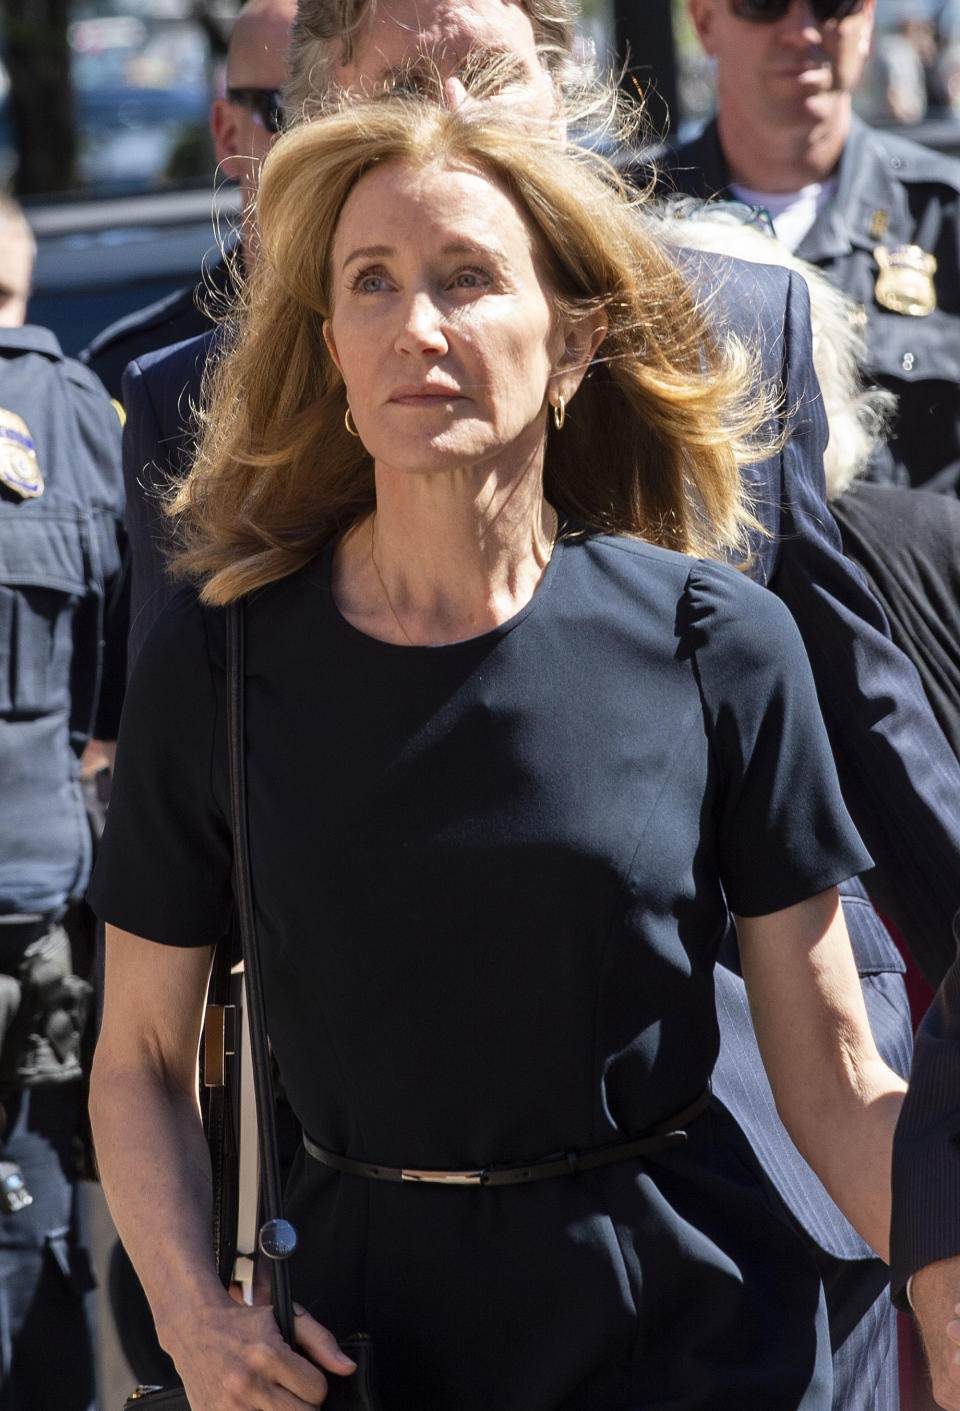 Actress Felicity Huffman makes her way to the entrance of the John Joseph Moakley United States Courthouse September 13, 2019 in Boston, where she will be sentenced for her role in the College Admissions scandal. - Huffman, one of the defendants charged in the college admissions cheating scandal, is scheduled to be sentenced for paying $15,000 to inflate her daughters SAT scores, a crime she said she committed trying to be a good parent. (Photo by Joseph Prezioso / AFP)        (Photo credit should read JOSEPH PREZIOSO/AFP/Getty Images)